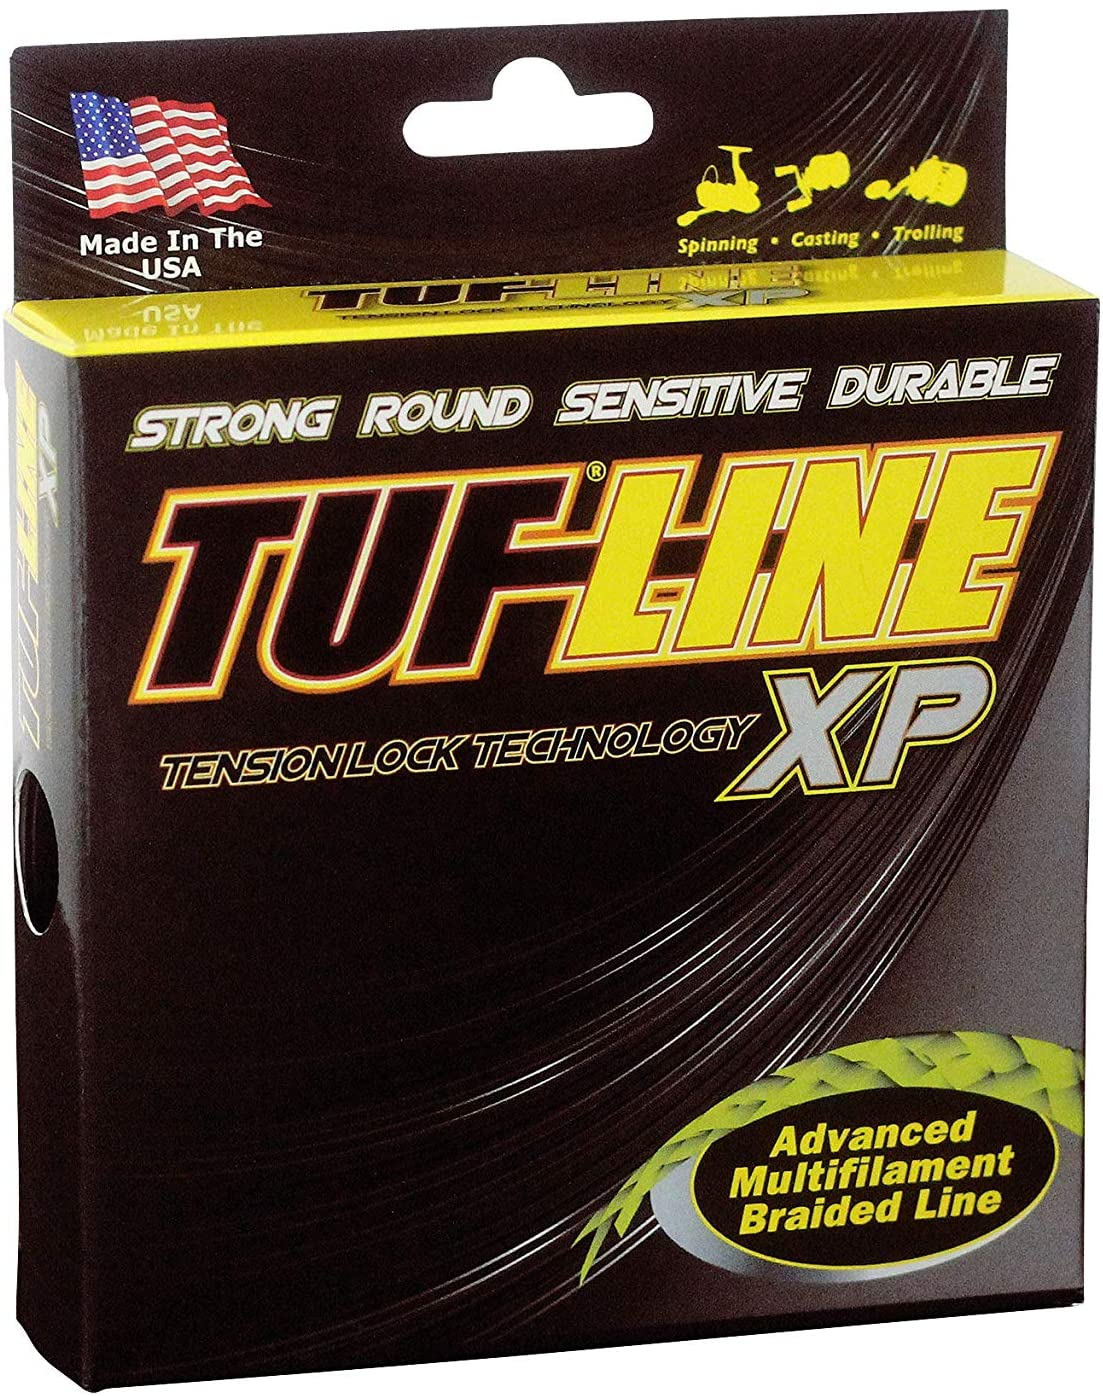 Tuf-Line XP 600-Yard Max 53% New products, world's highest quality popular! OFF Braided Line 20-Pound Fishing Green